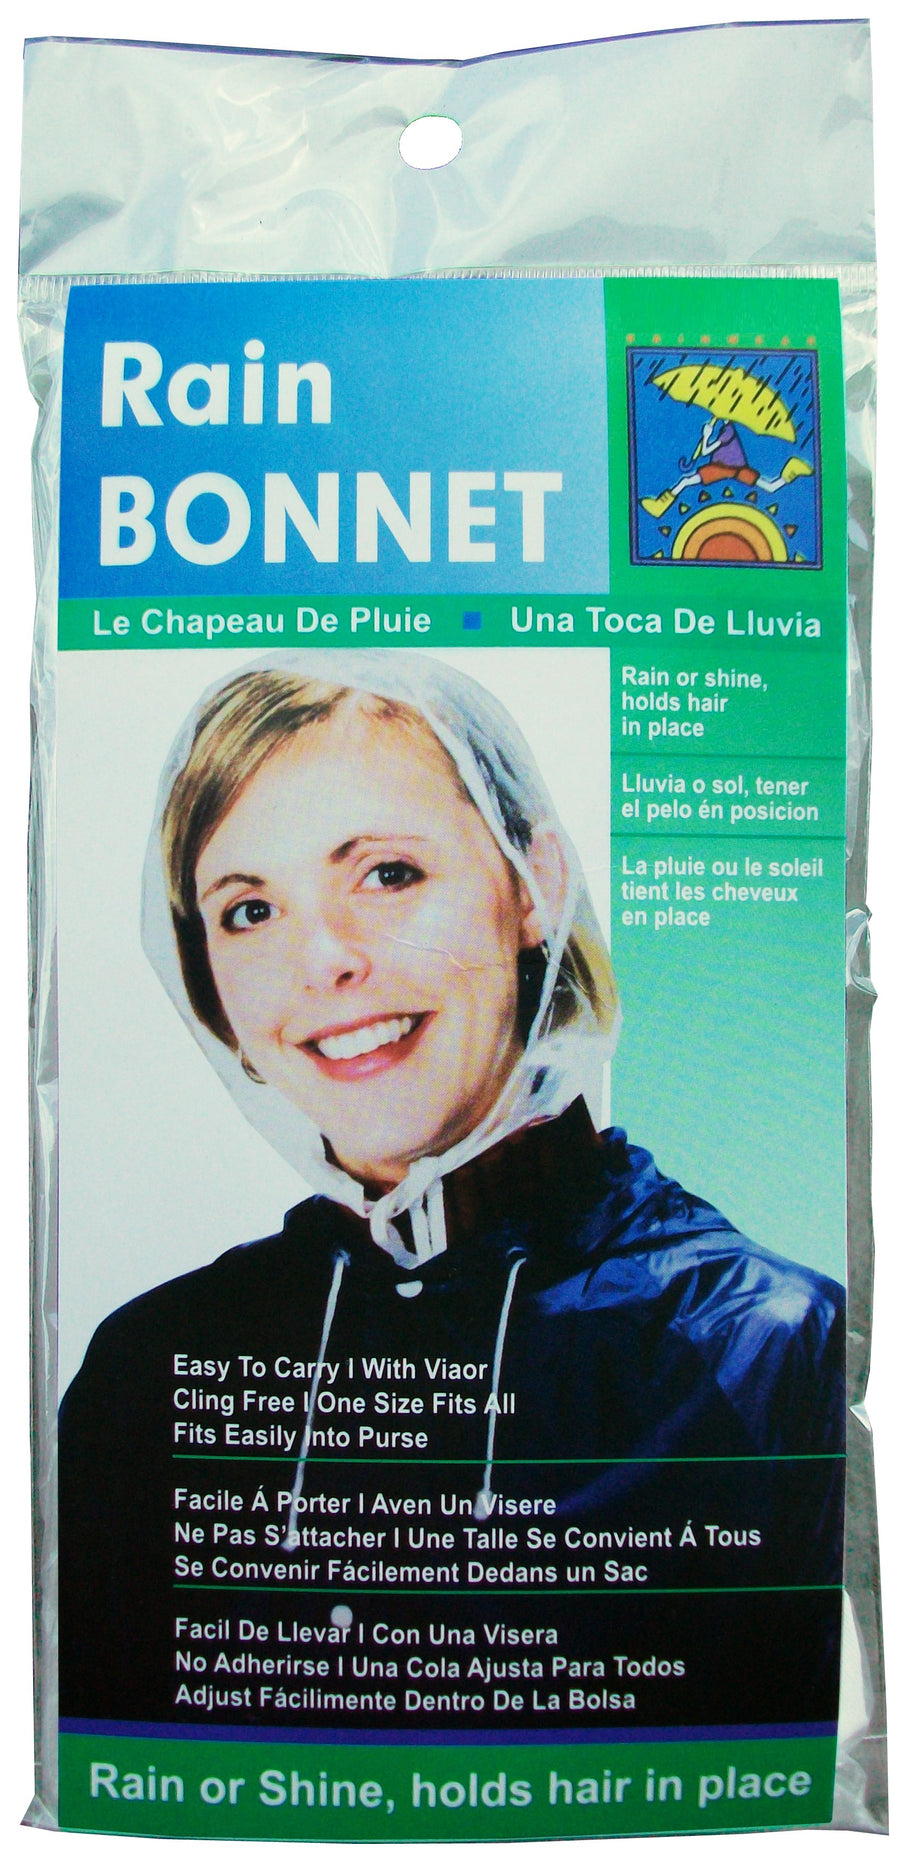 Wholesale Rain Bonnet with Visor